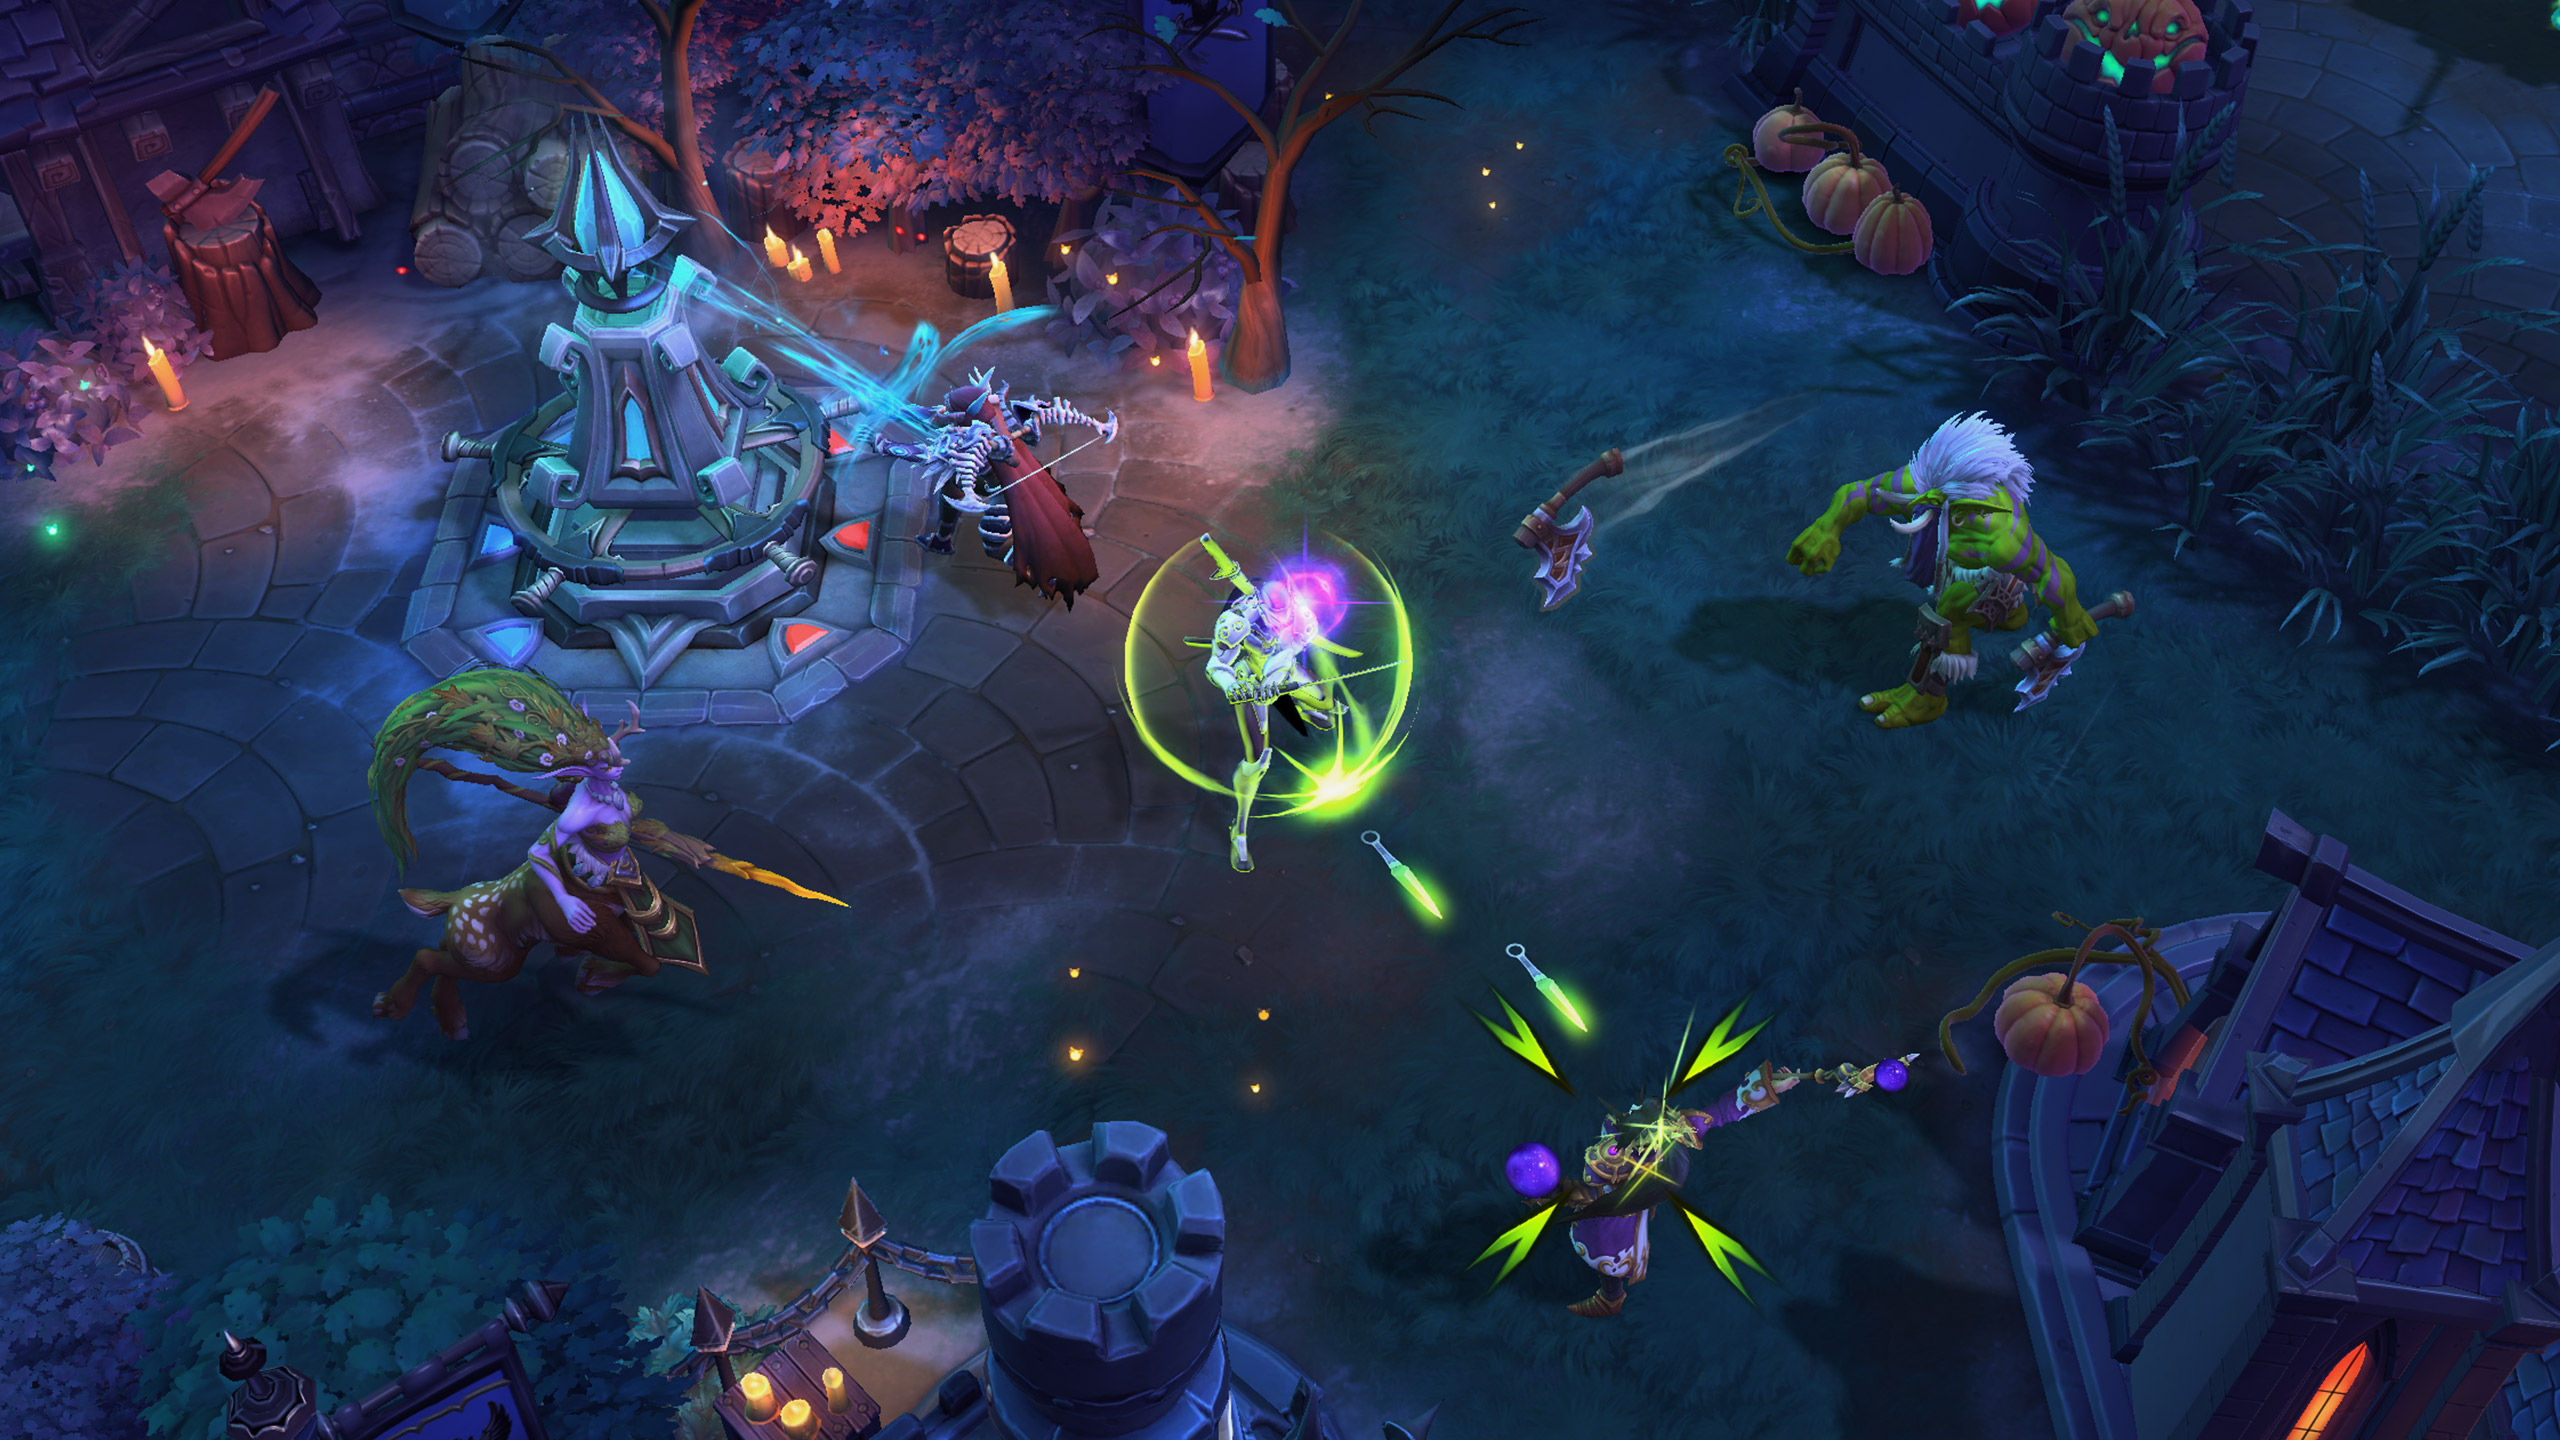 blizzard matchmaking heroes of the storm 2018 heroes of the storm global  blizzard, your matchmaking averaging is  and if ud becomes the most played game mode blizzard can let some heroes going wild in .